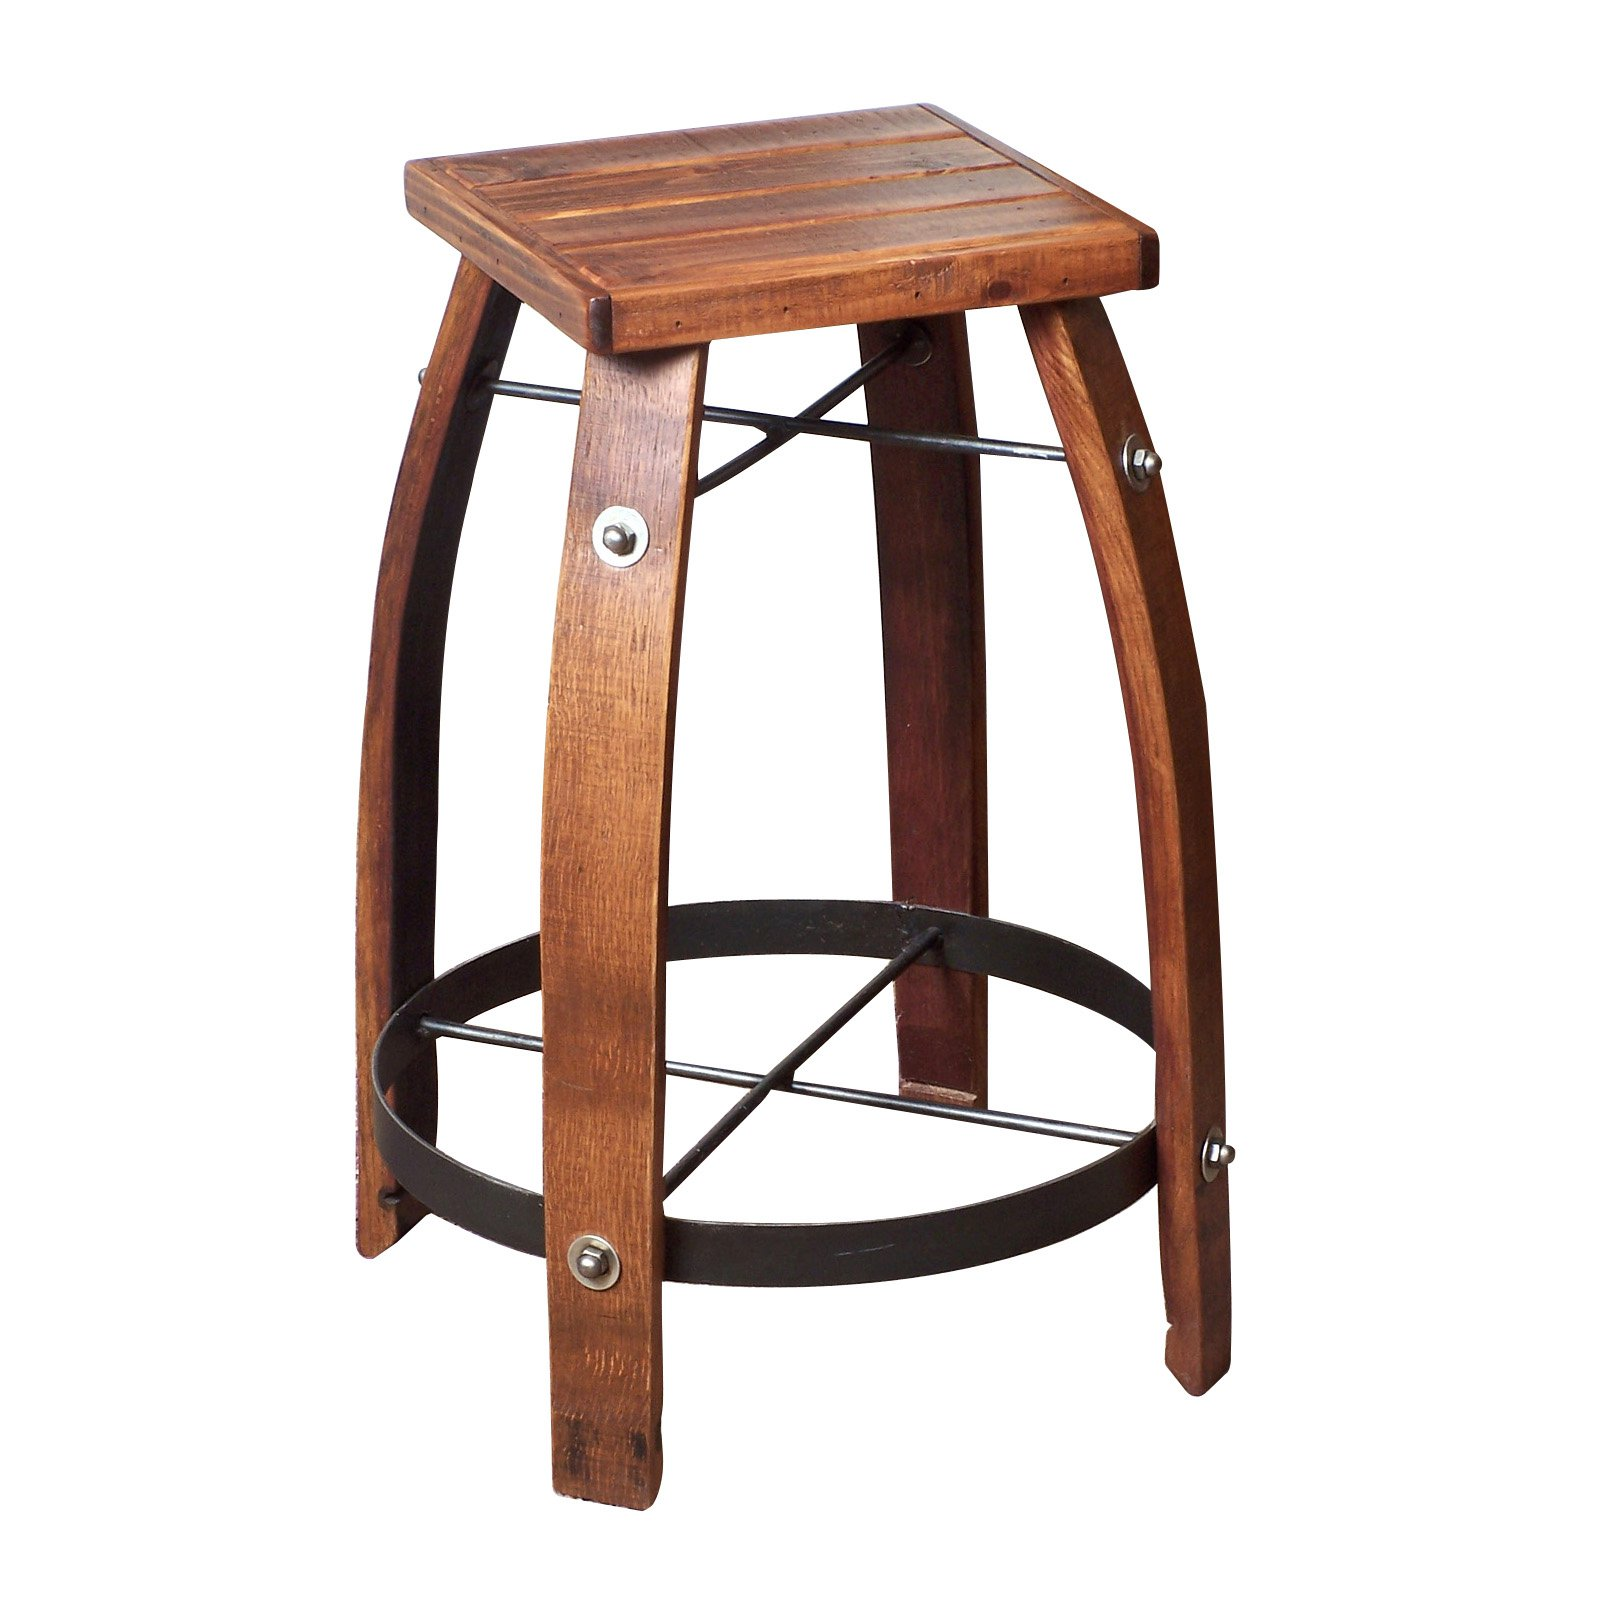 2 Day Designs Reclaimed 28 Inch Stave Wine Barrel Bar Stool with